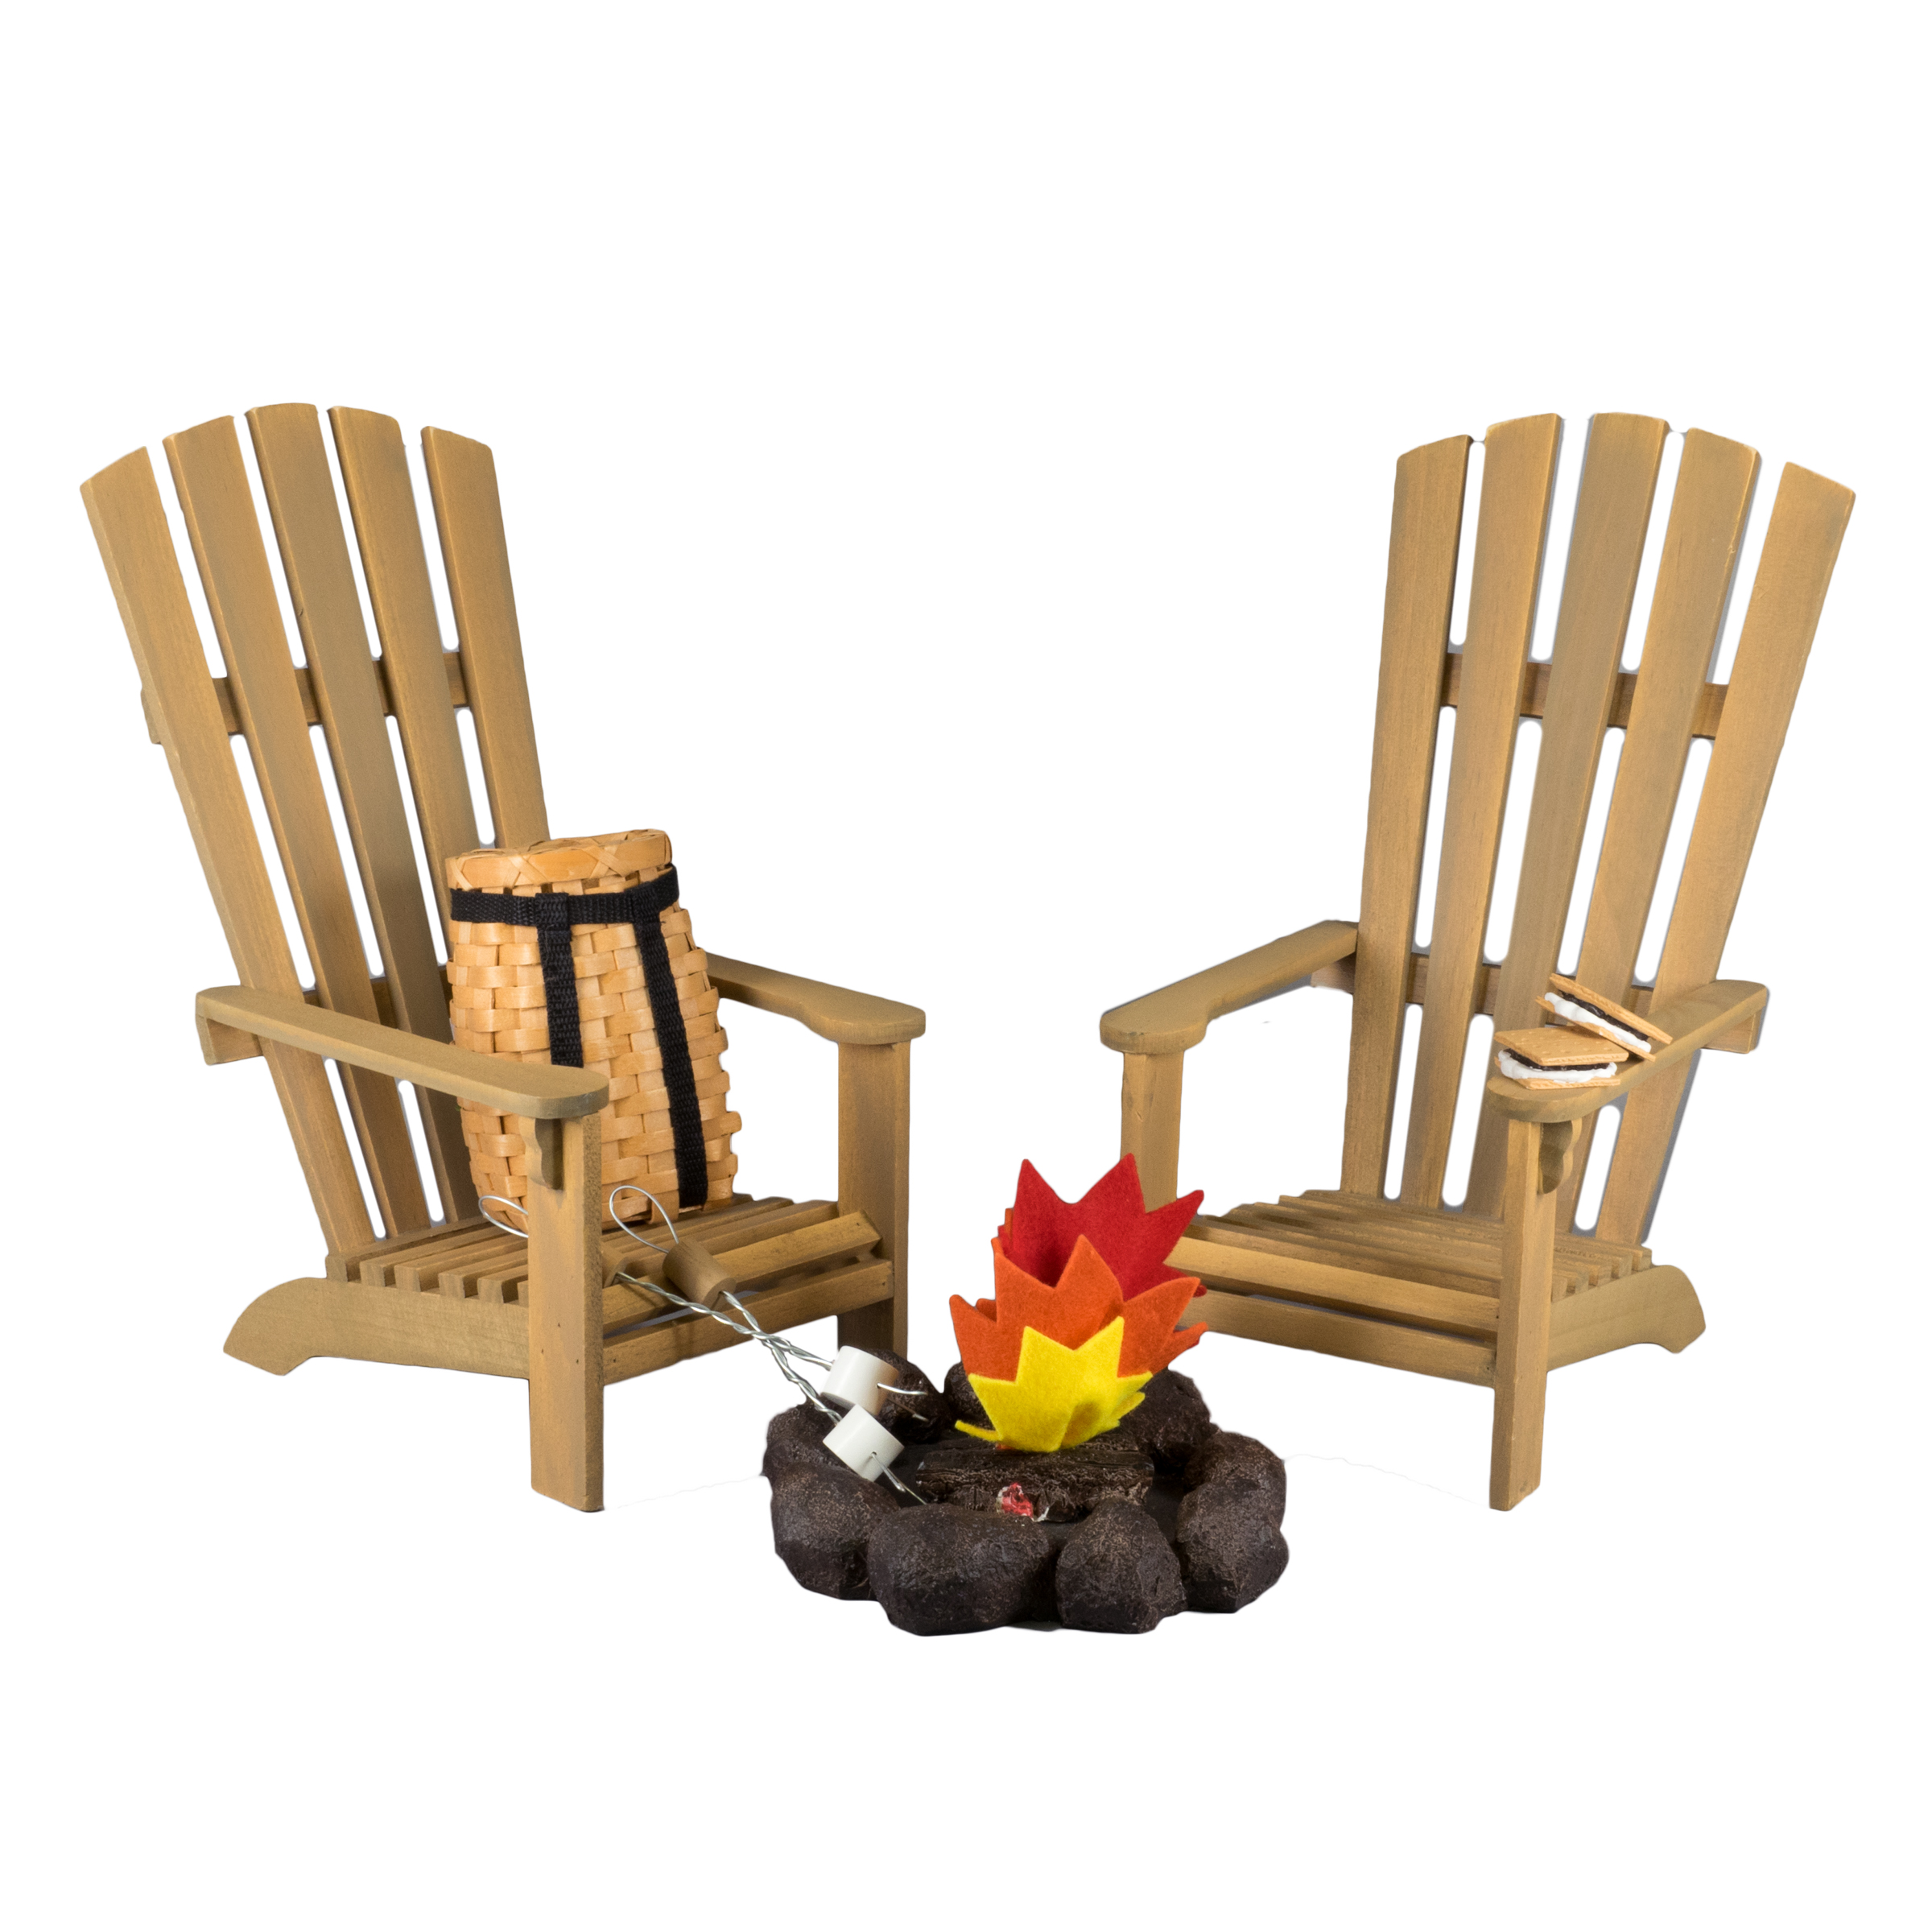 """18"""" Doll Furniture and Accessories for 18"""" Dolls, Great Outdoors Wilderness Adventure Play Set"""